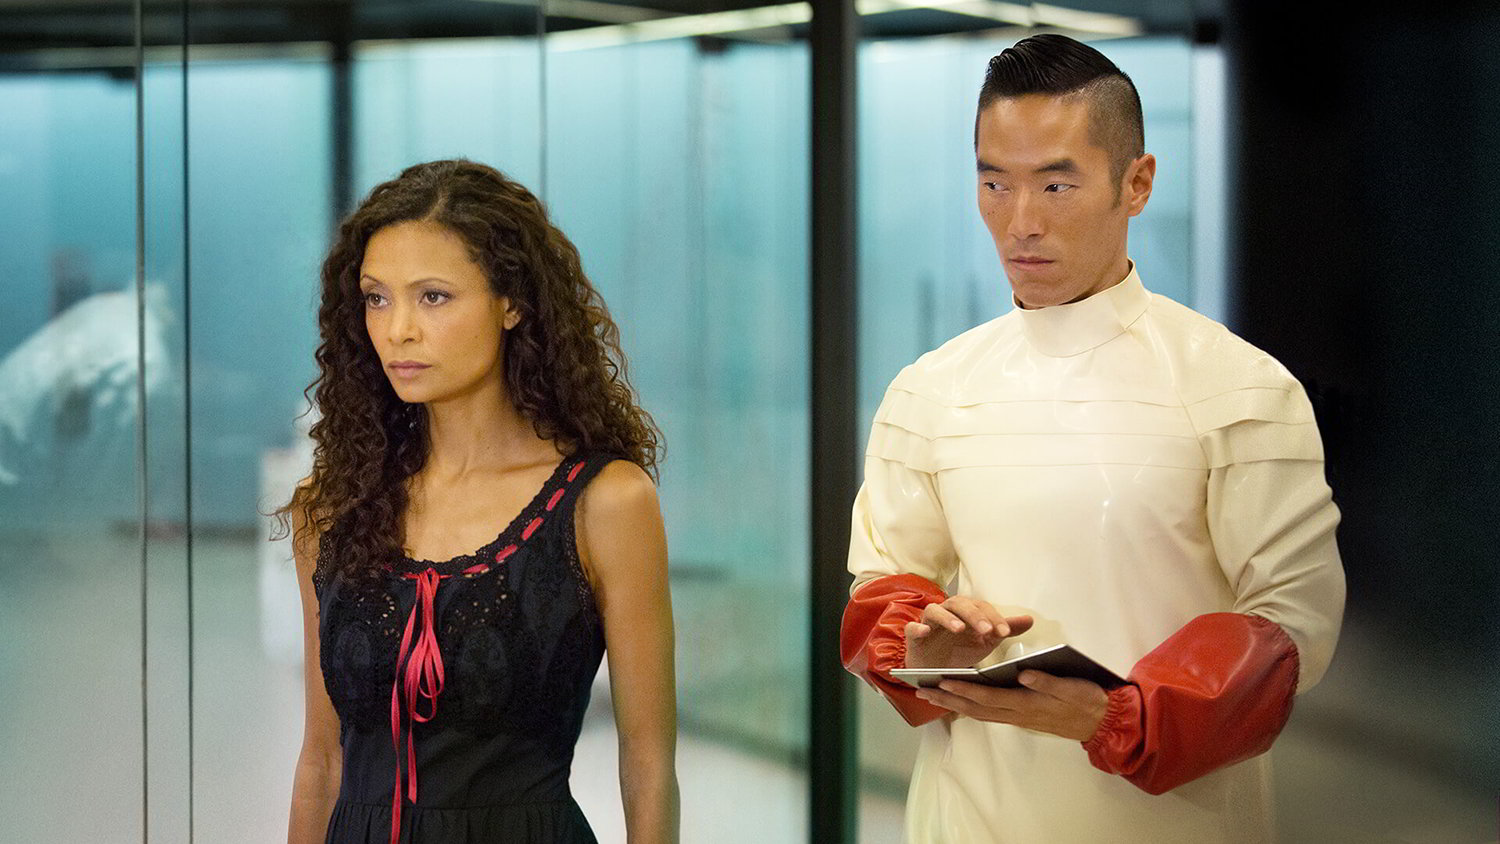 Thandie Newton as Maeve and Leonardo Nam as Felix in HBO's Westworld